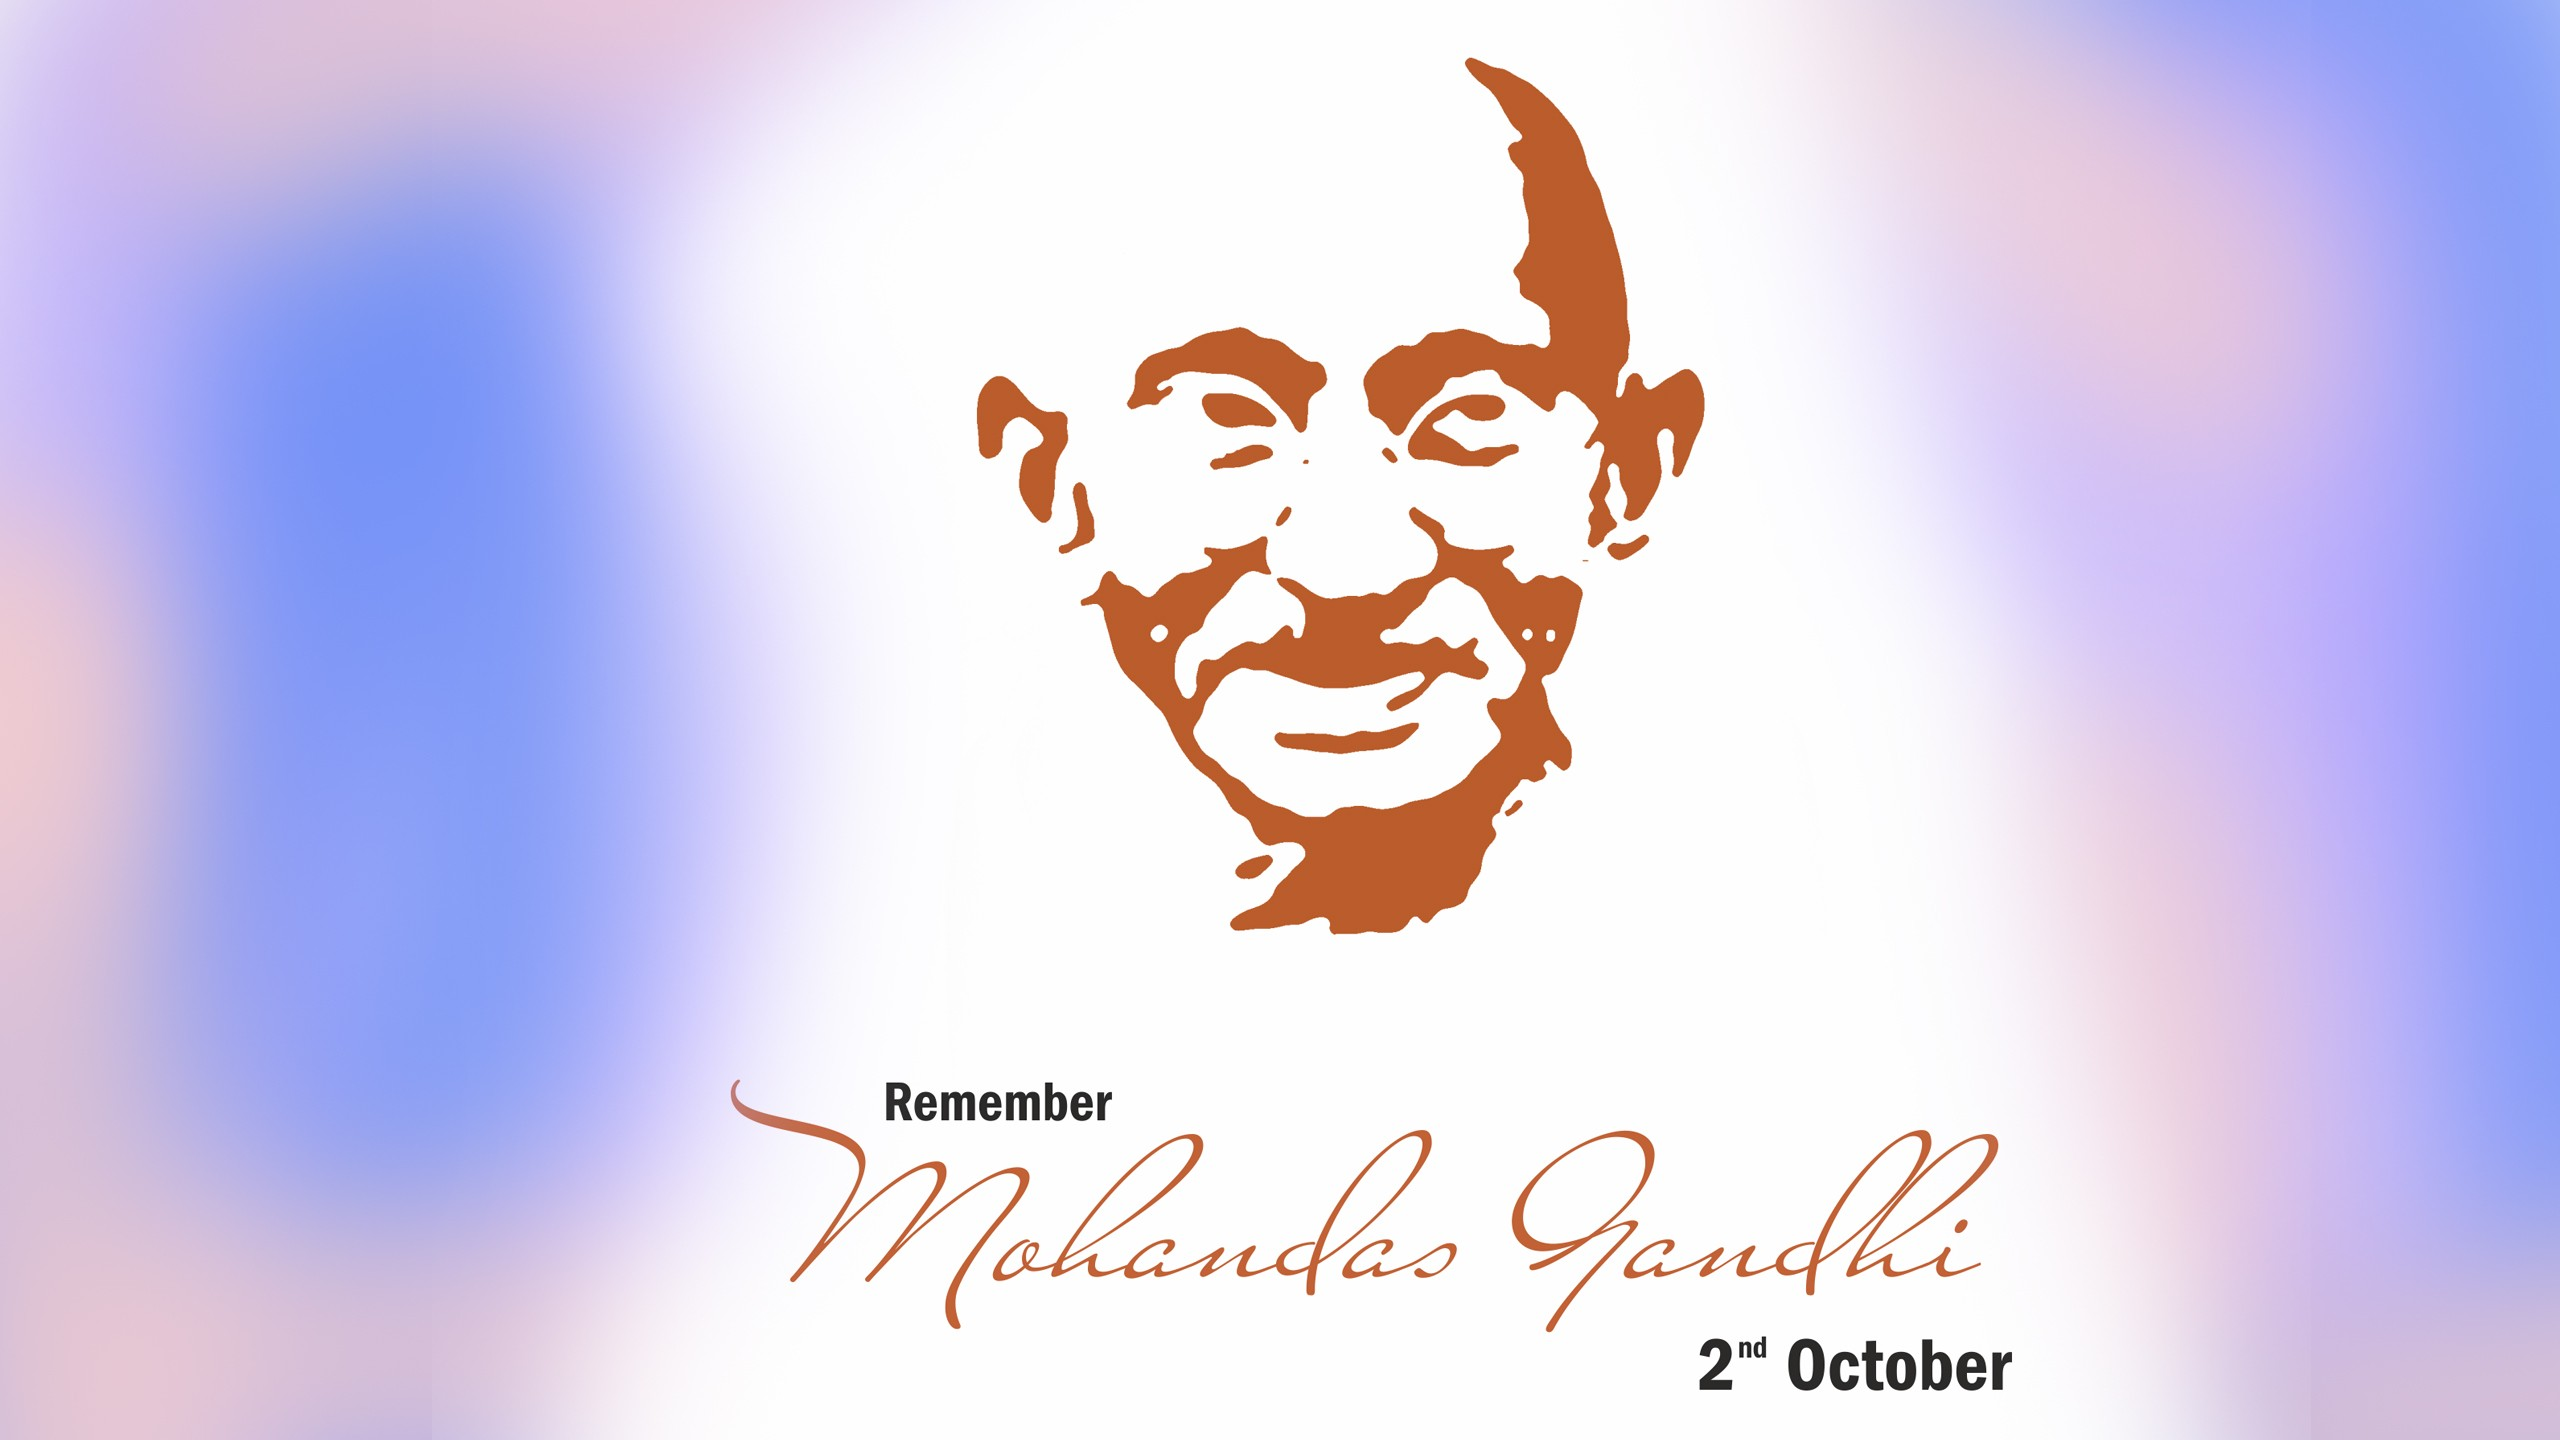 2nd October 2018 Gandhi Jayanti Images Quotes Messages